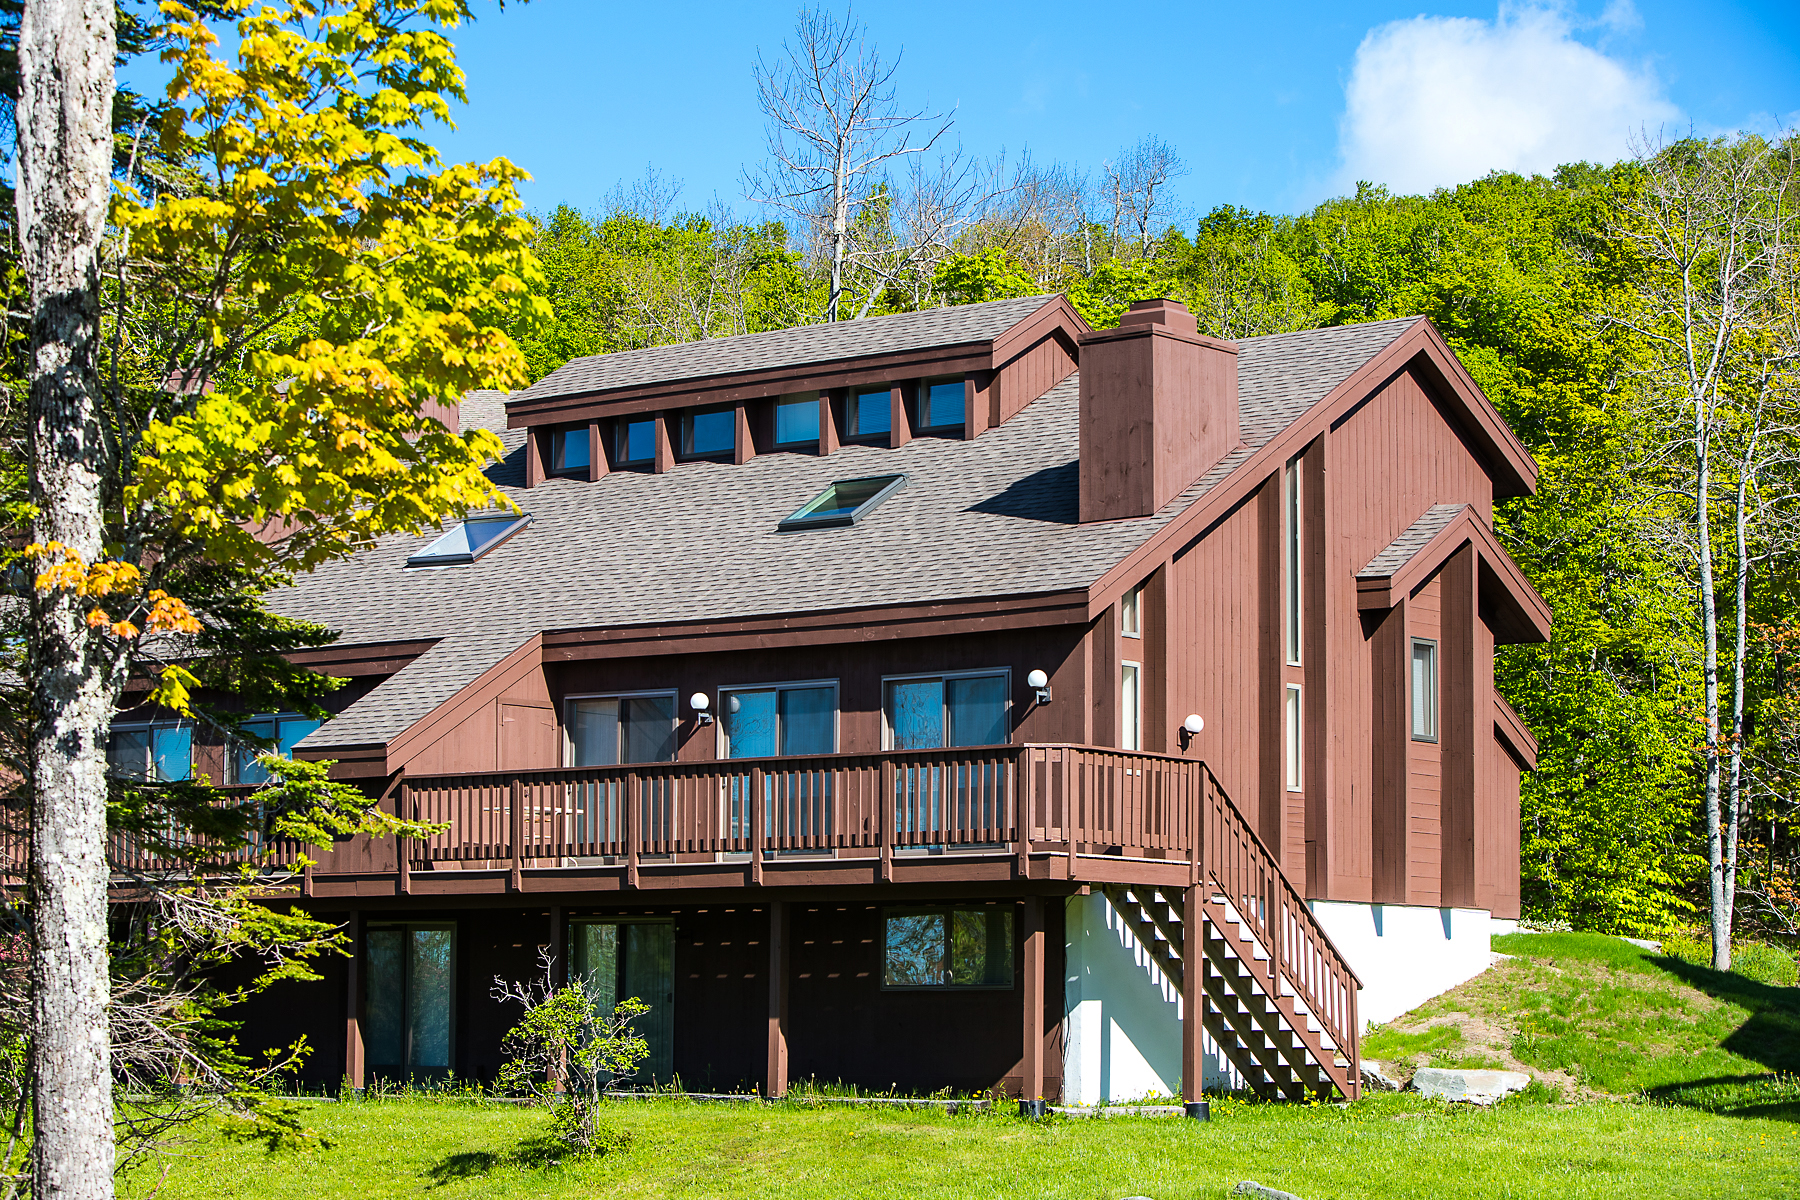 Condominio por un Venta en Views - Great Price - Near Ski Run 57 Ridges 201E Peru, Vermont, 05152 Estados Unidos